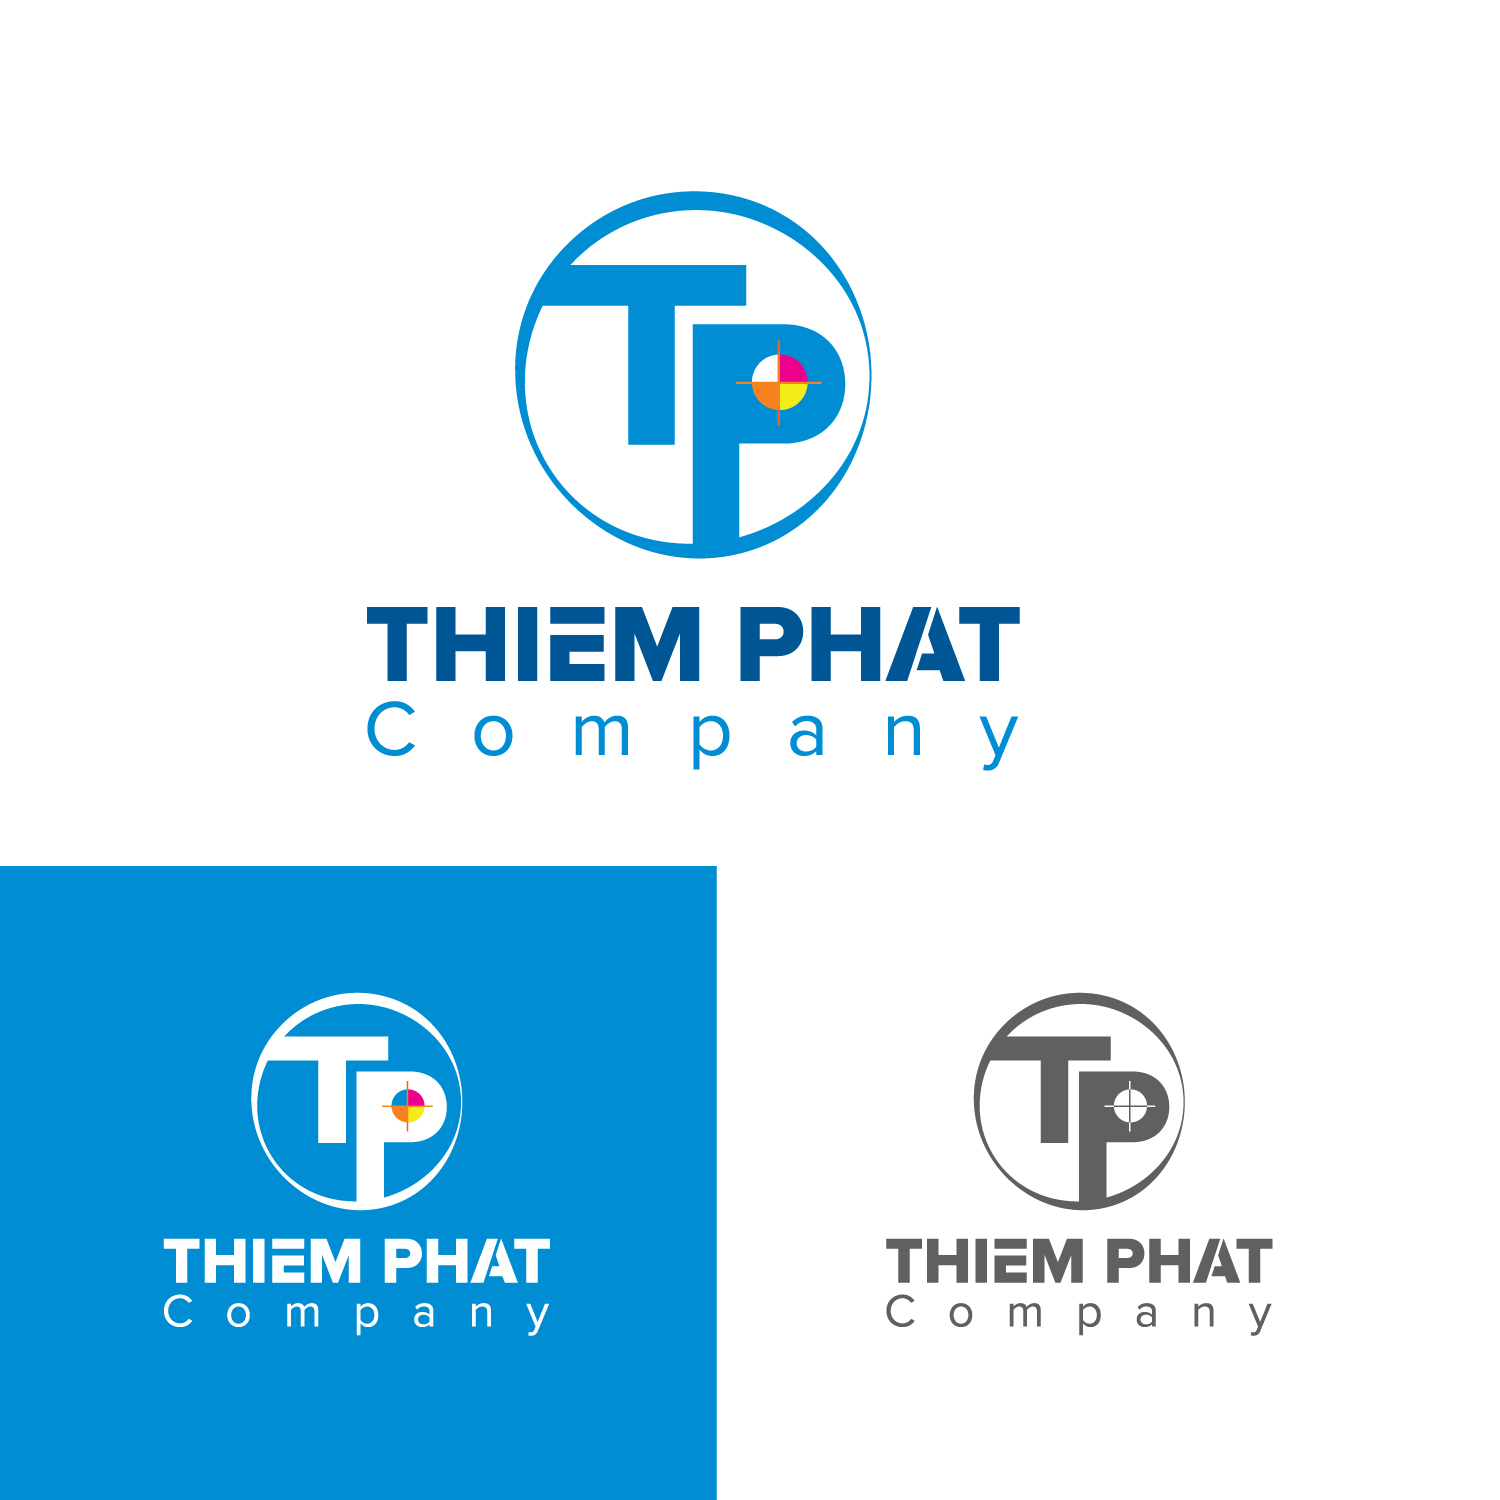 Logo Design by Bac Huu - Entry No. 273 in the Logo Design Contest New Logo Design for Thiem Phat company.